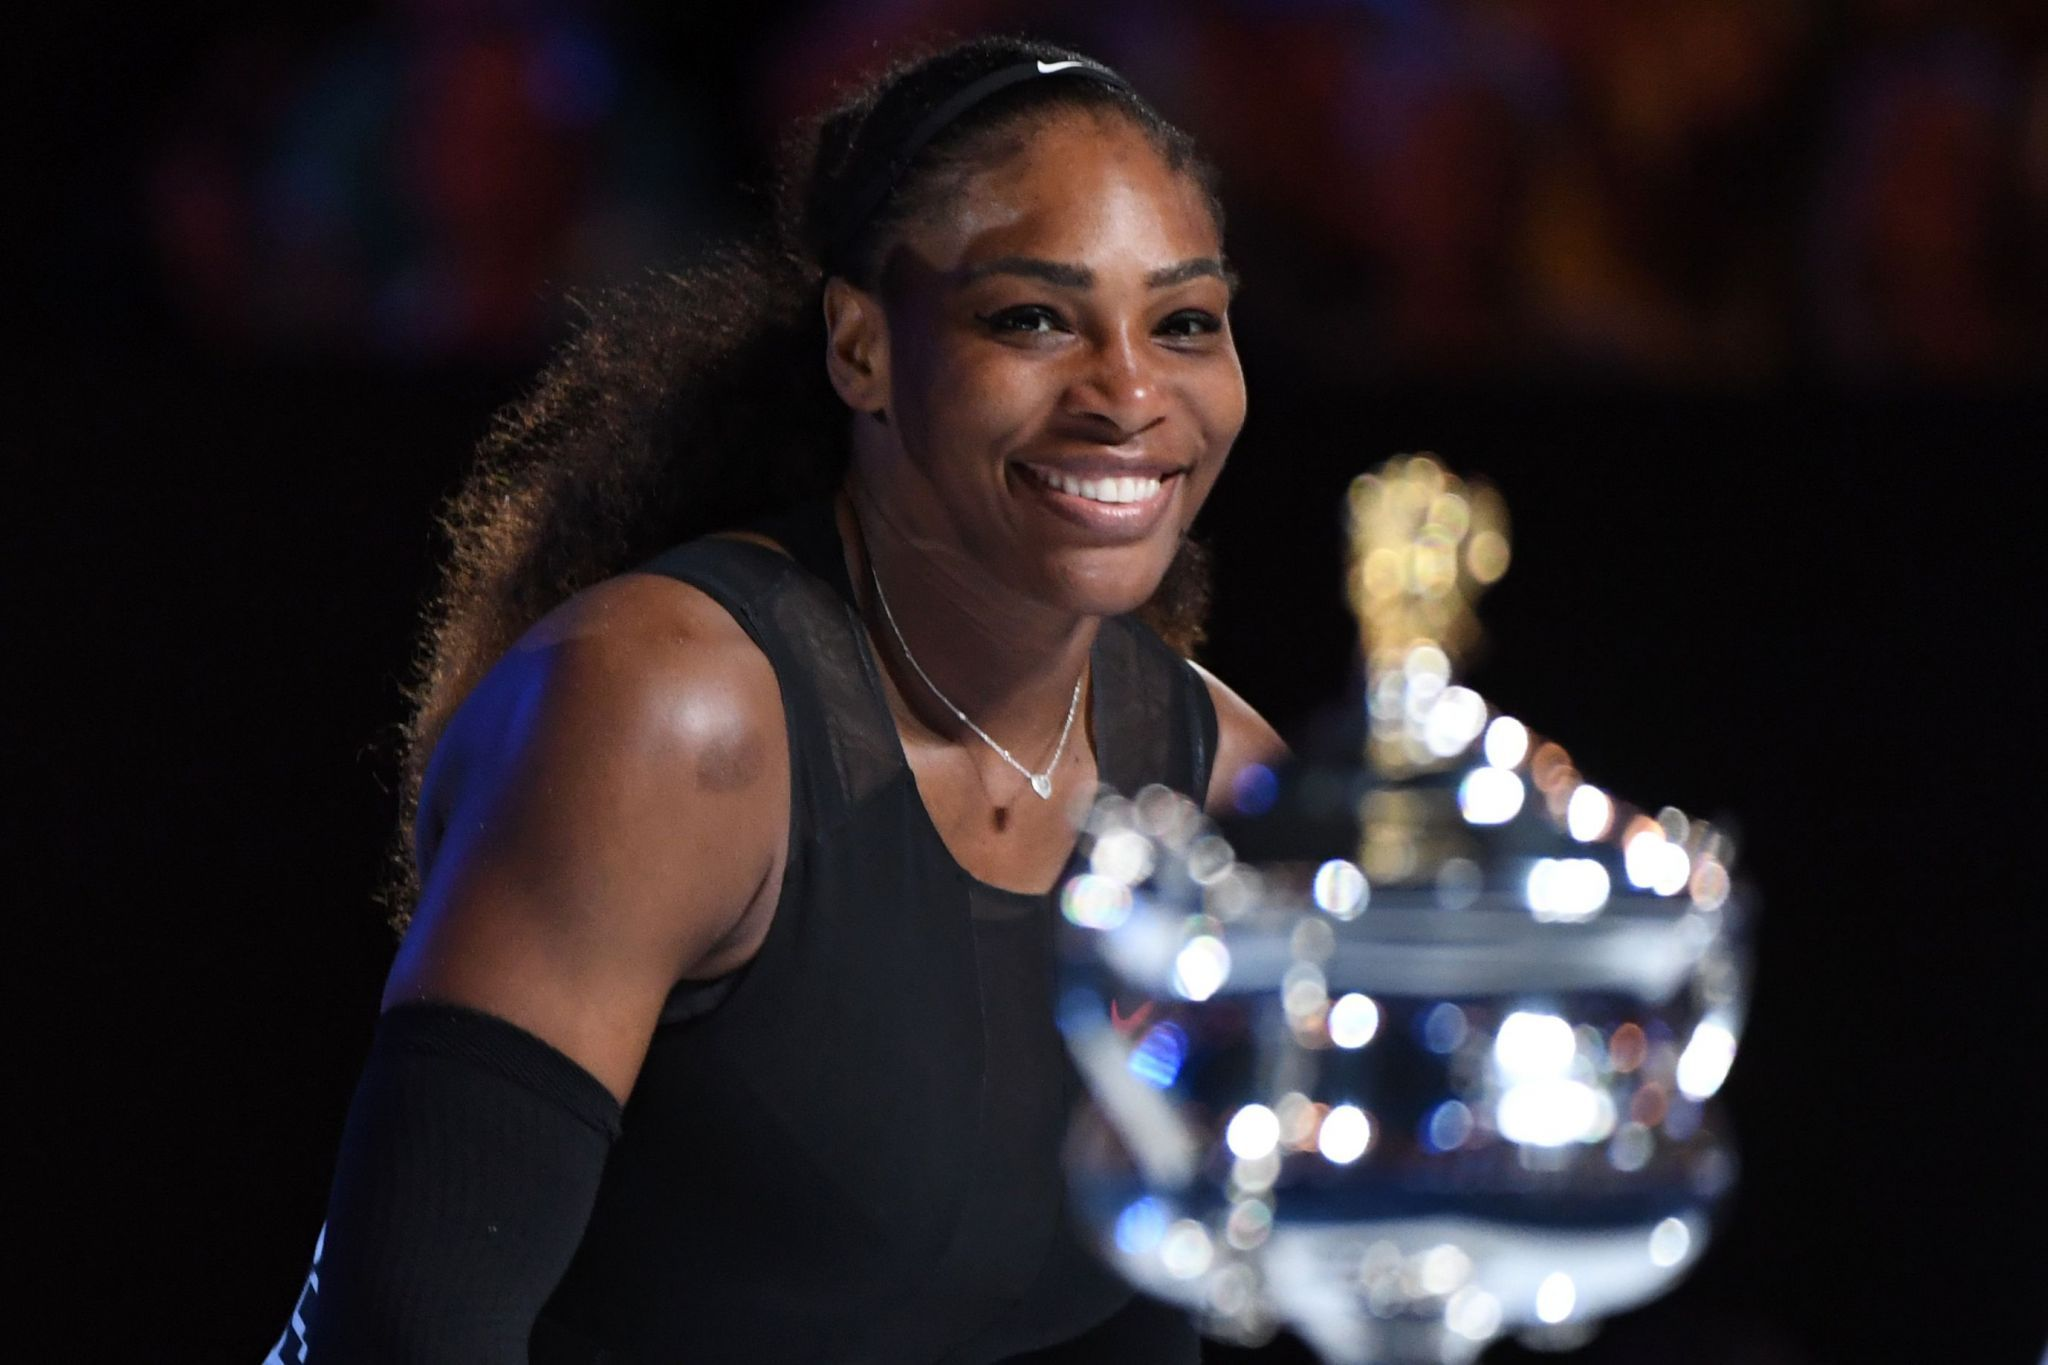 pics Serena Williams 23 Grand Slam singles